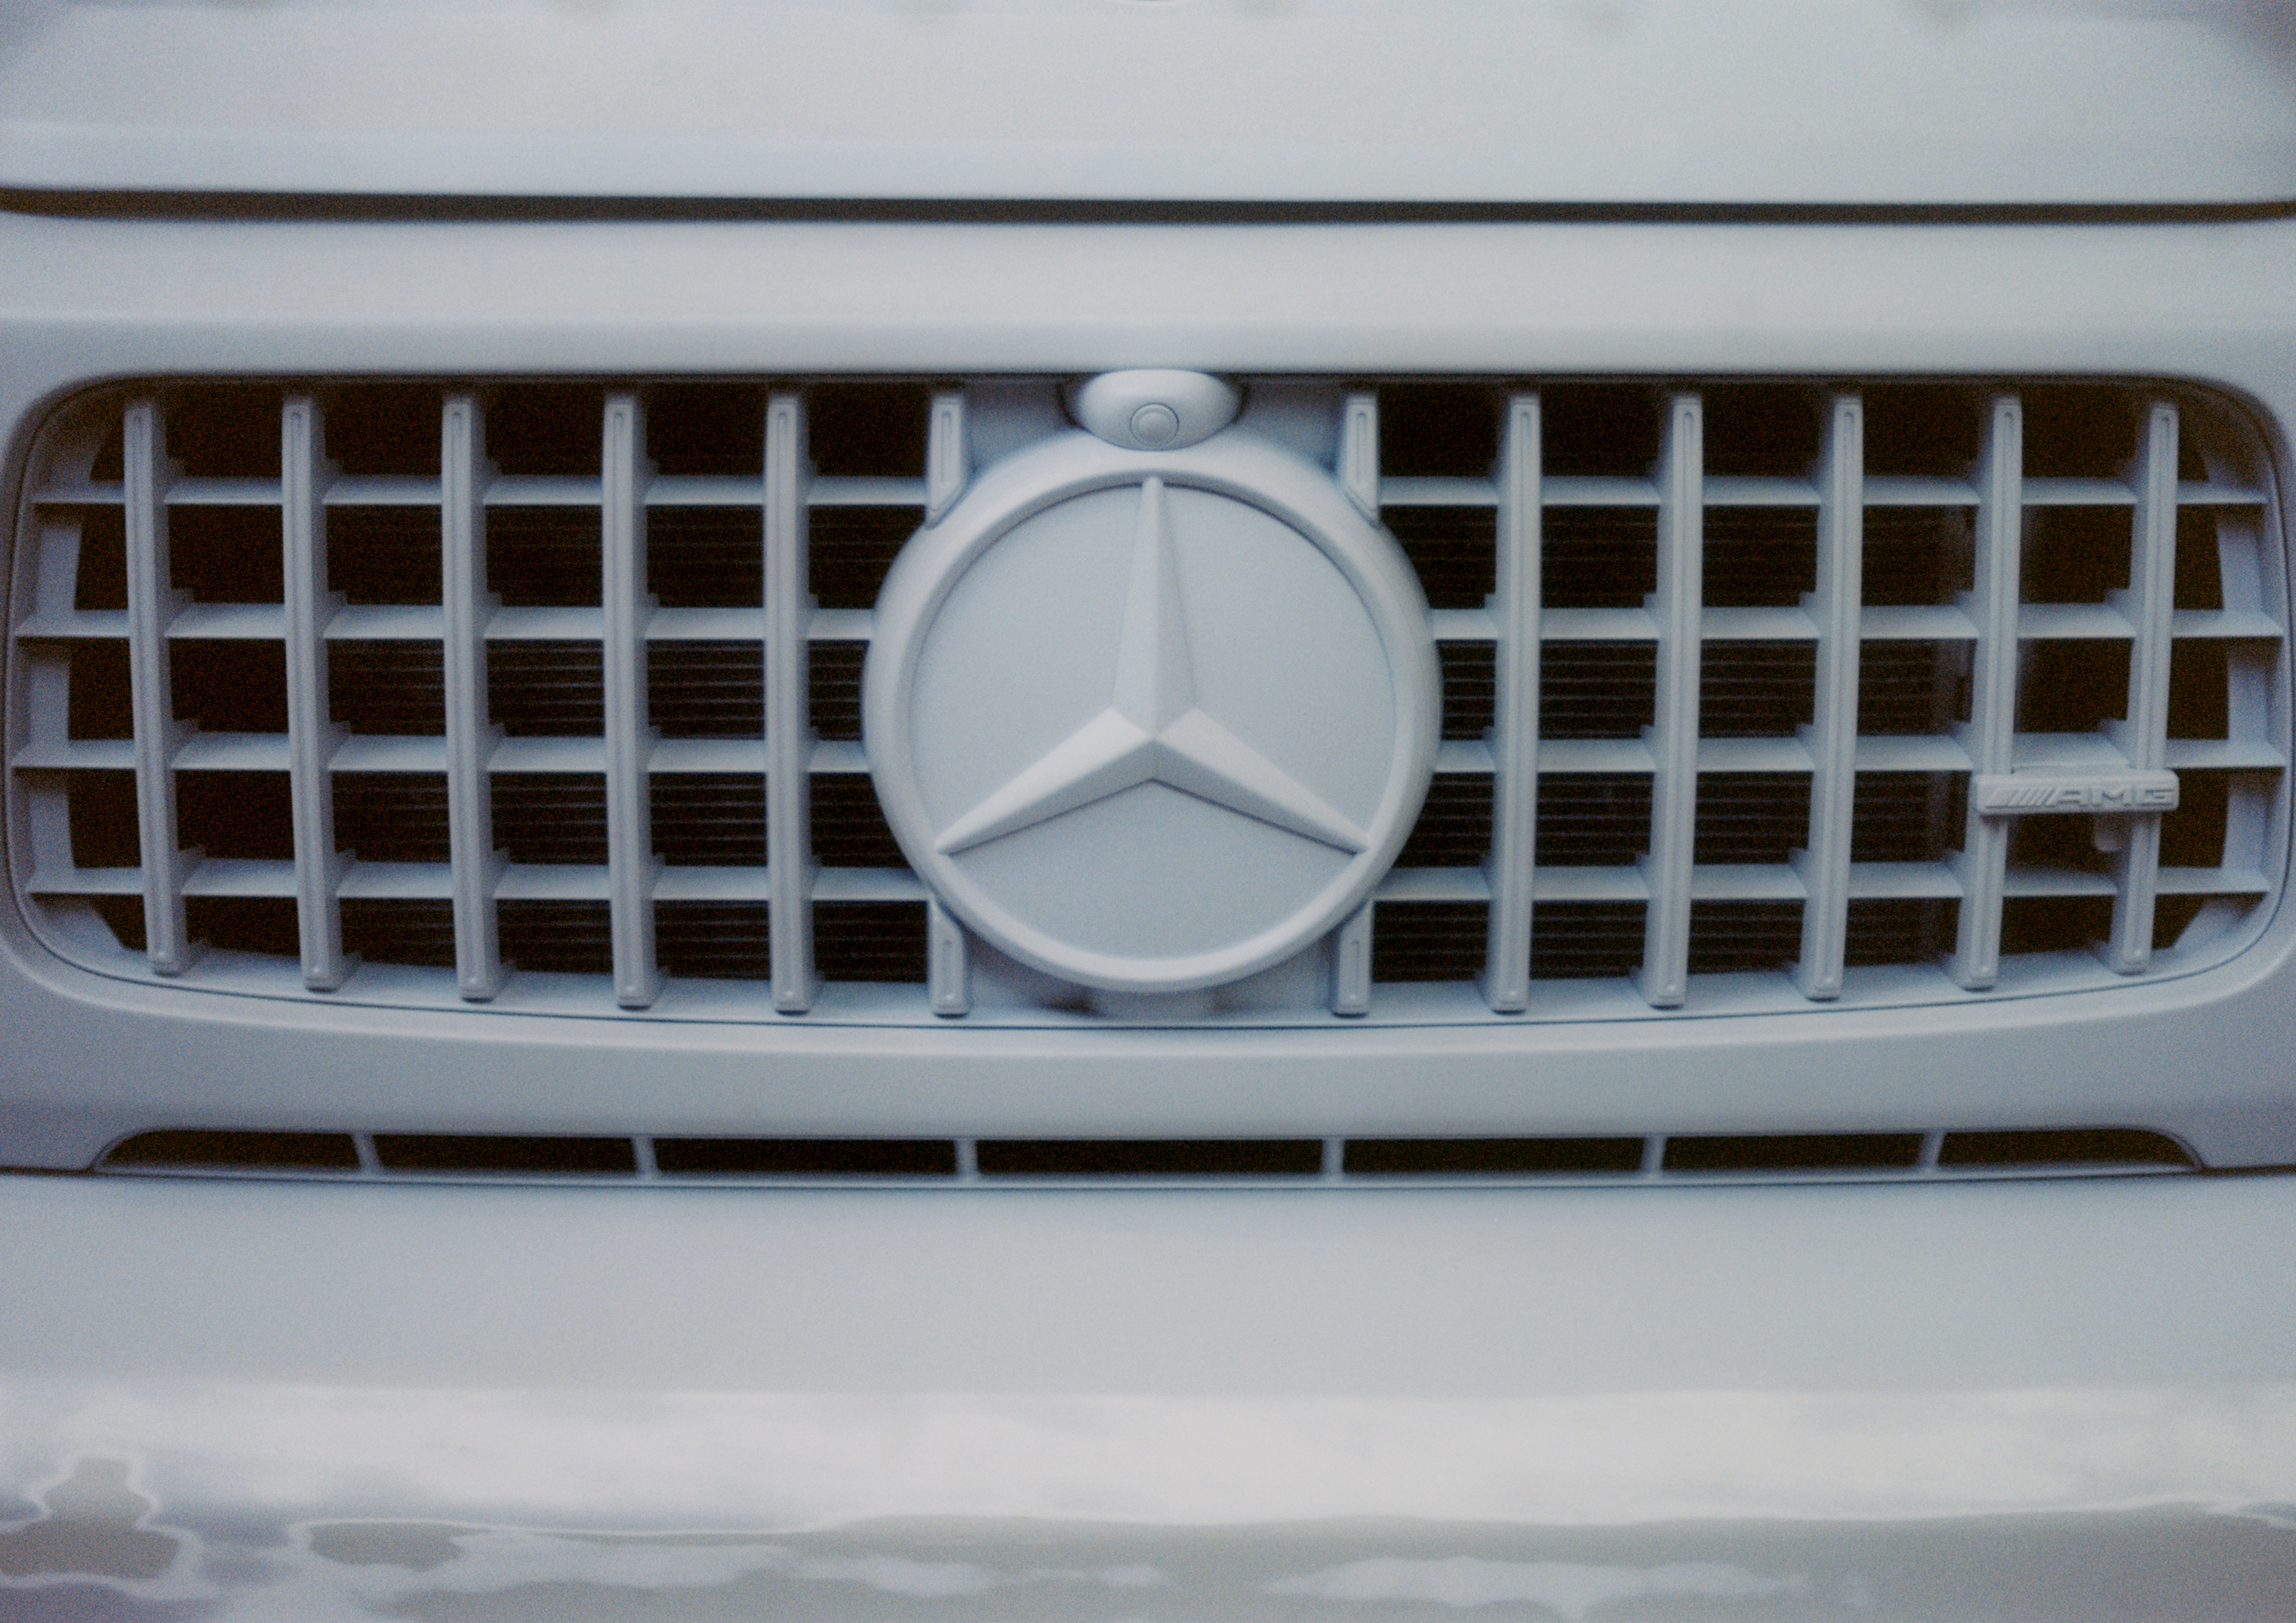 A detail of the Project Geländewagen collaboration between Virgil Abloh and Mercedes-Benz.